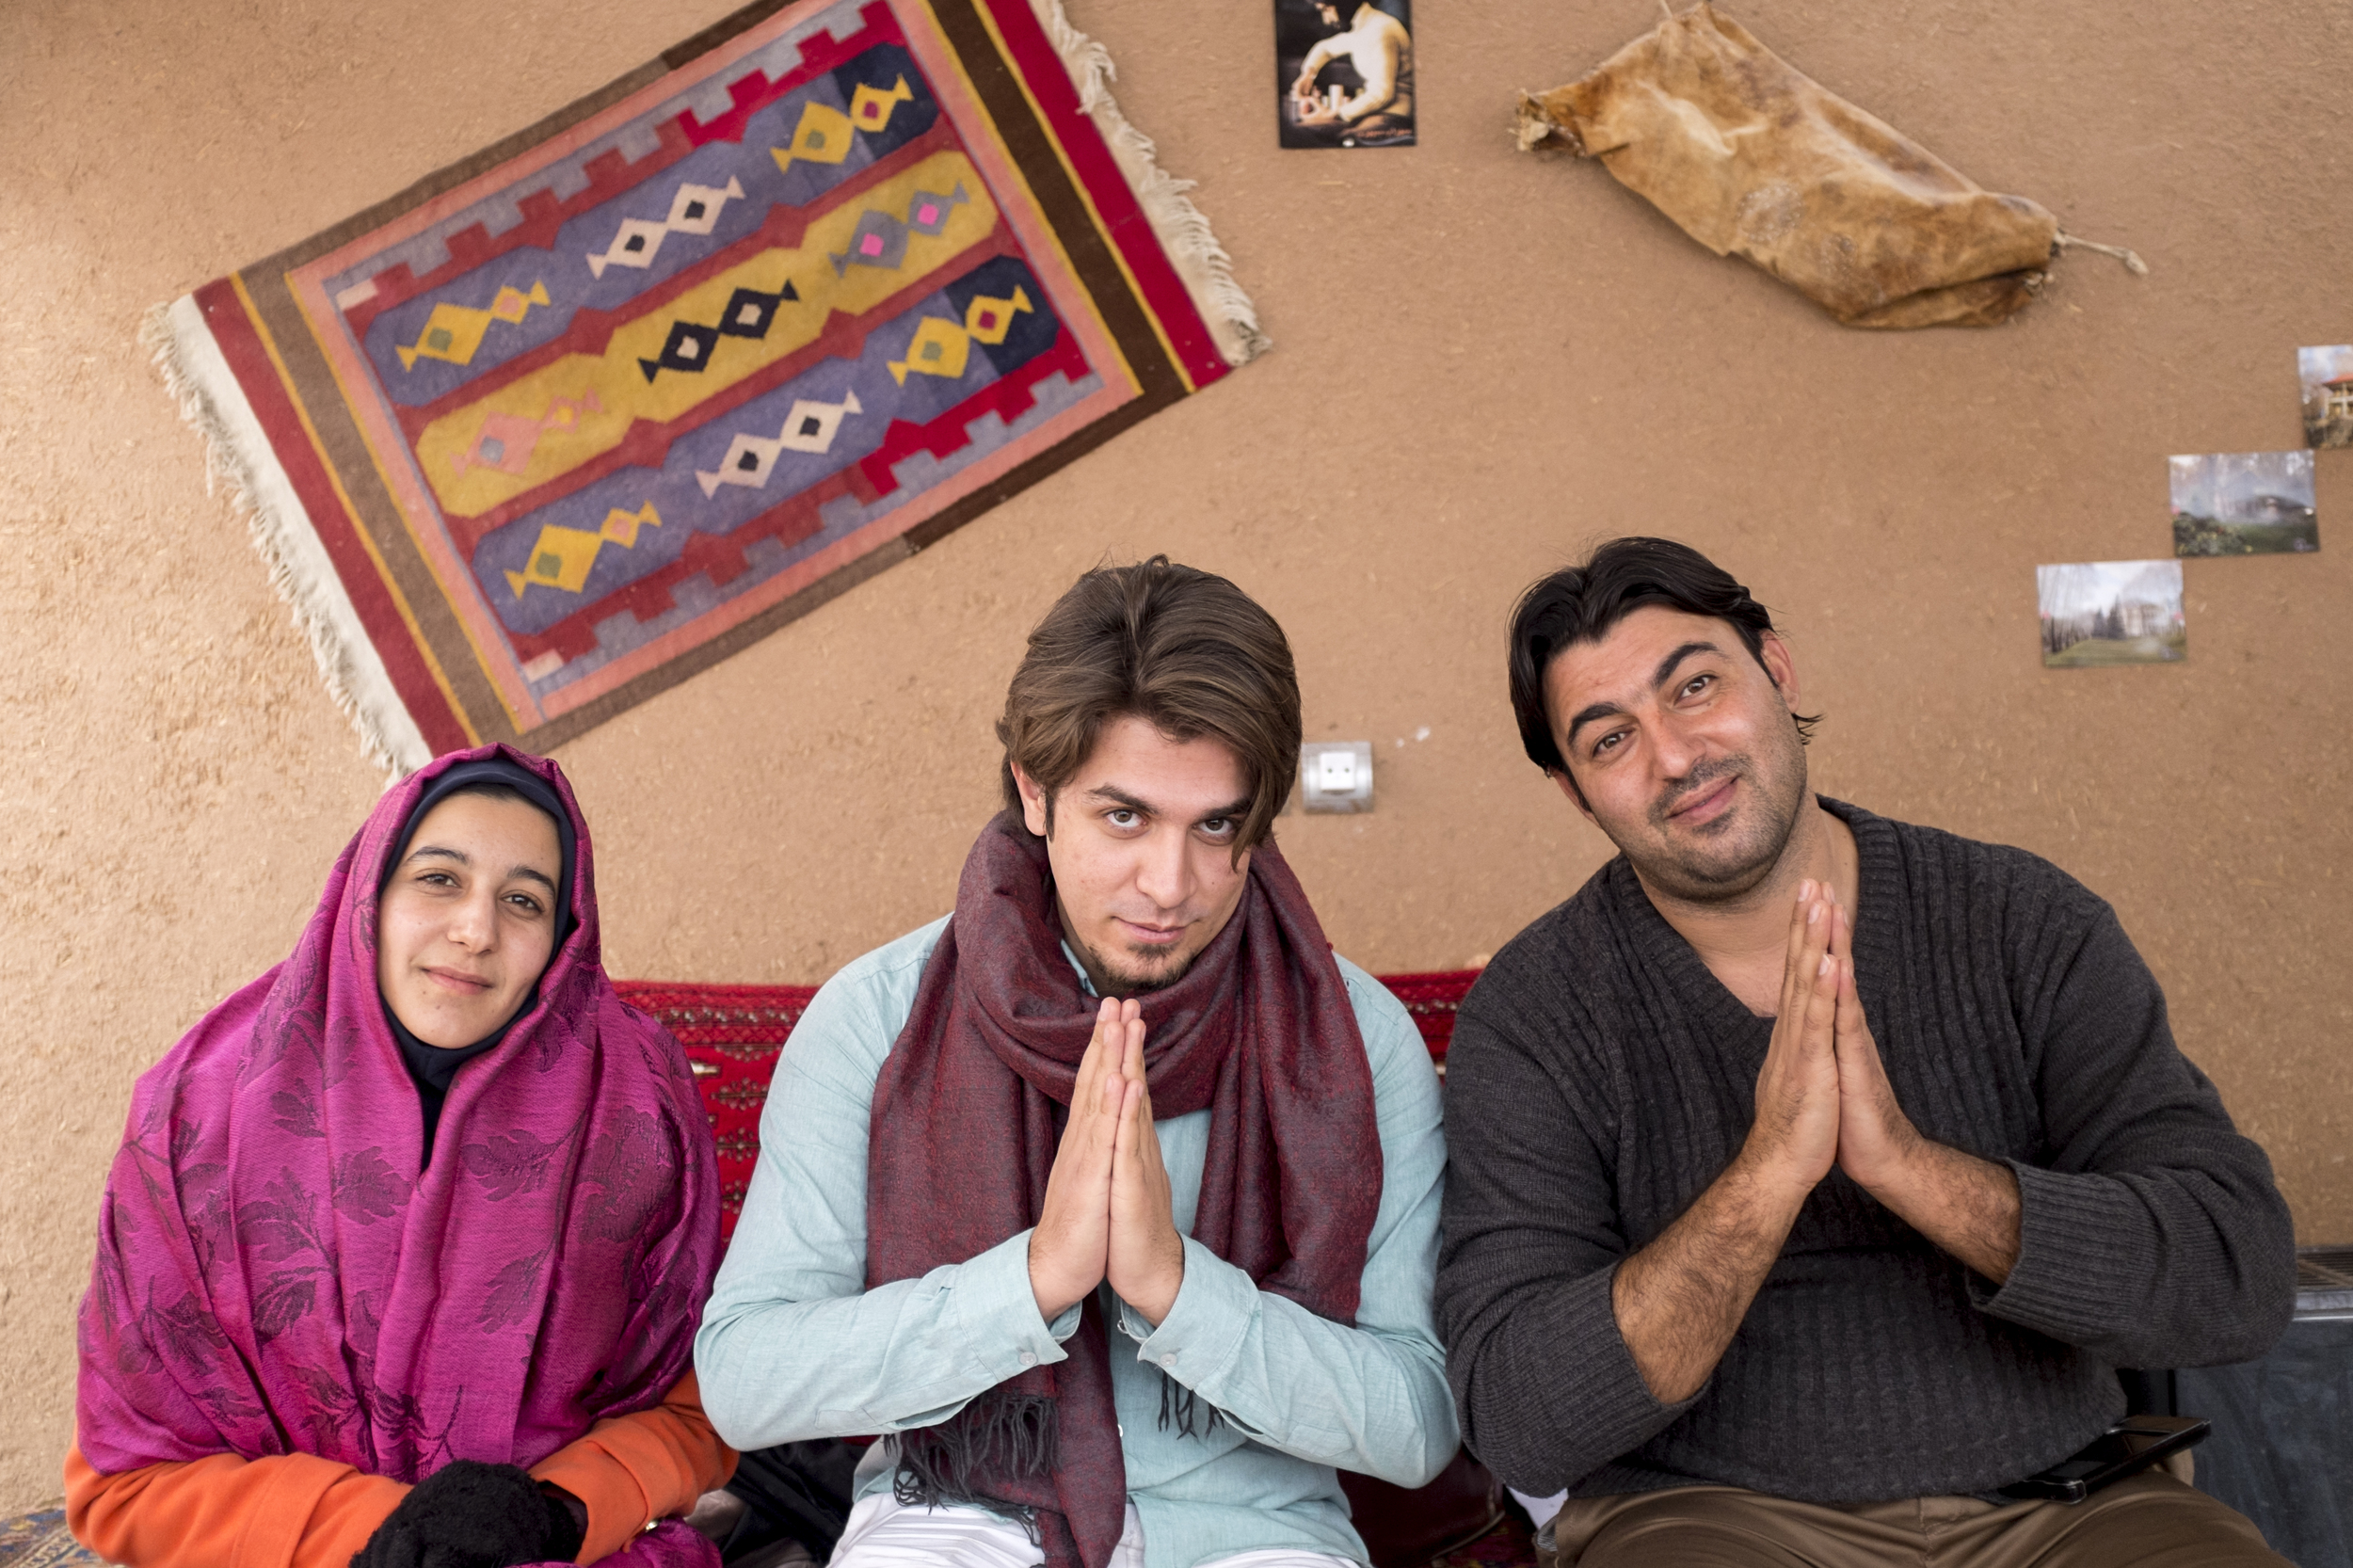 Tayebbeh, Farshad and Mohammad Rshidi, my first azizams in Iran,at the Kamalalmolk traditional guesthouse in Kashan in January 2015.